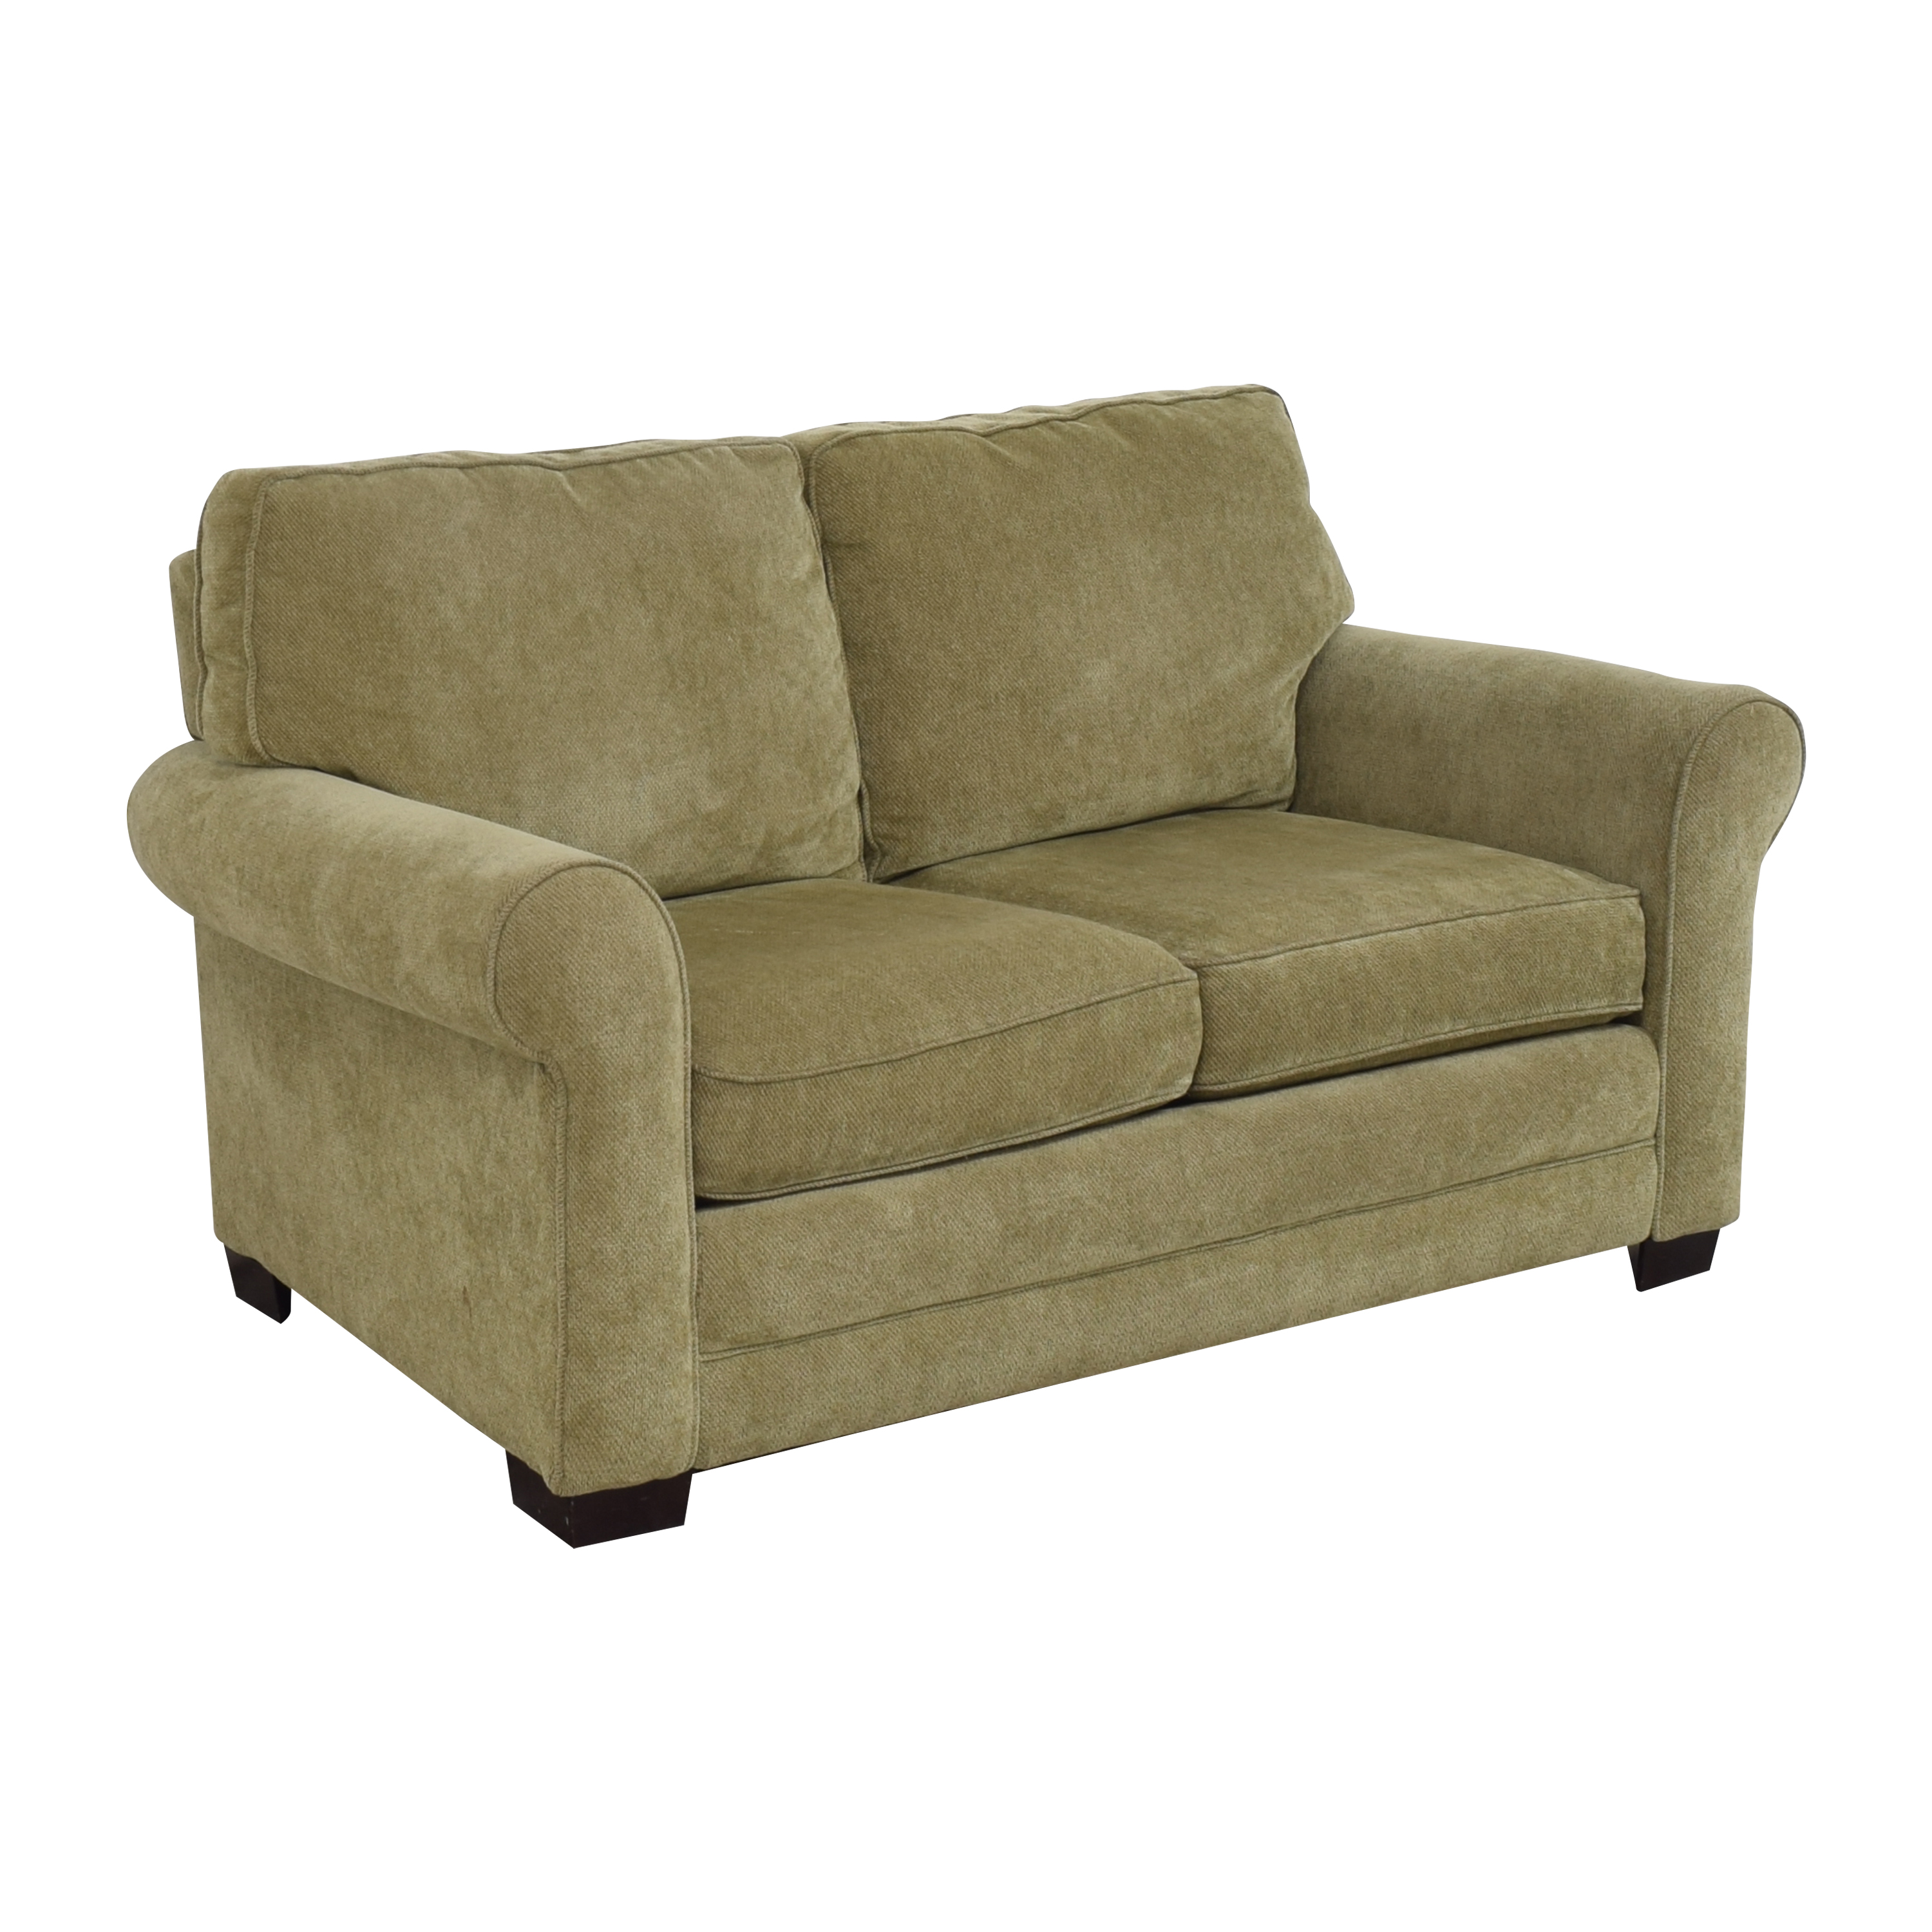 buy Raymour & Flanigan Raymour & Flanigan Roll Arm Loveseat online